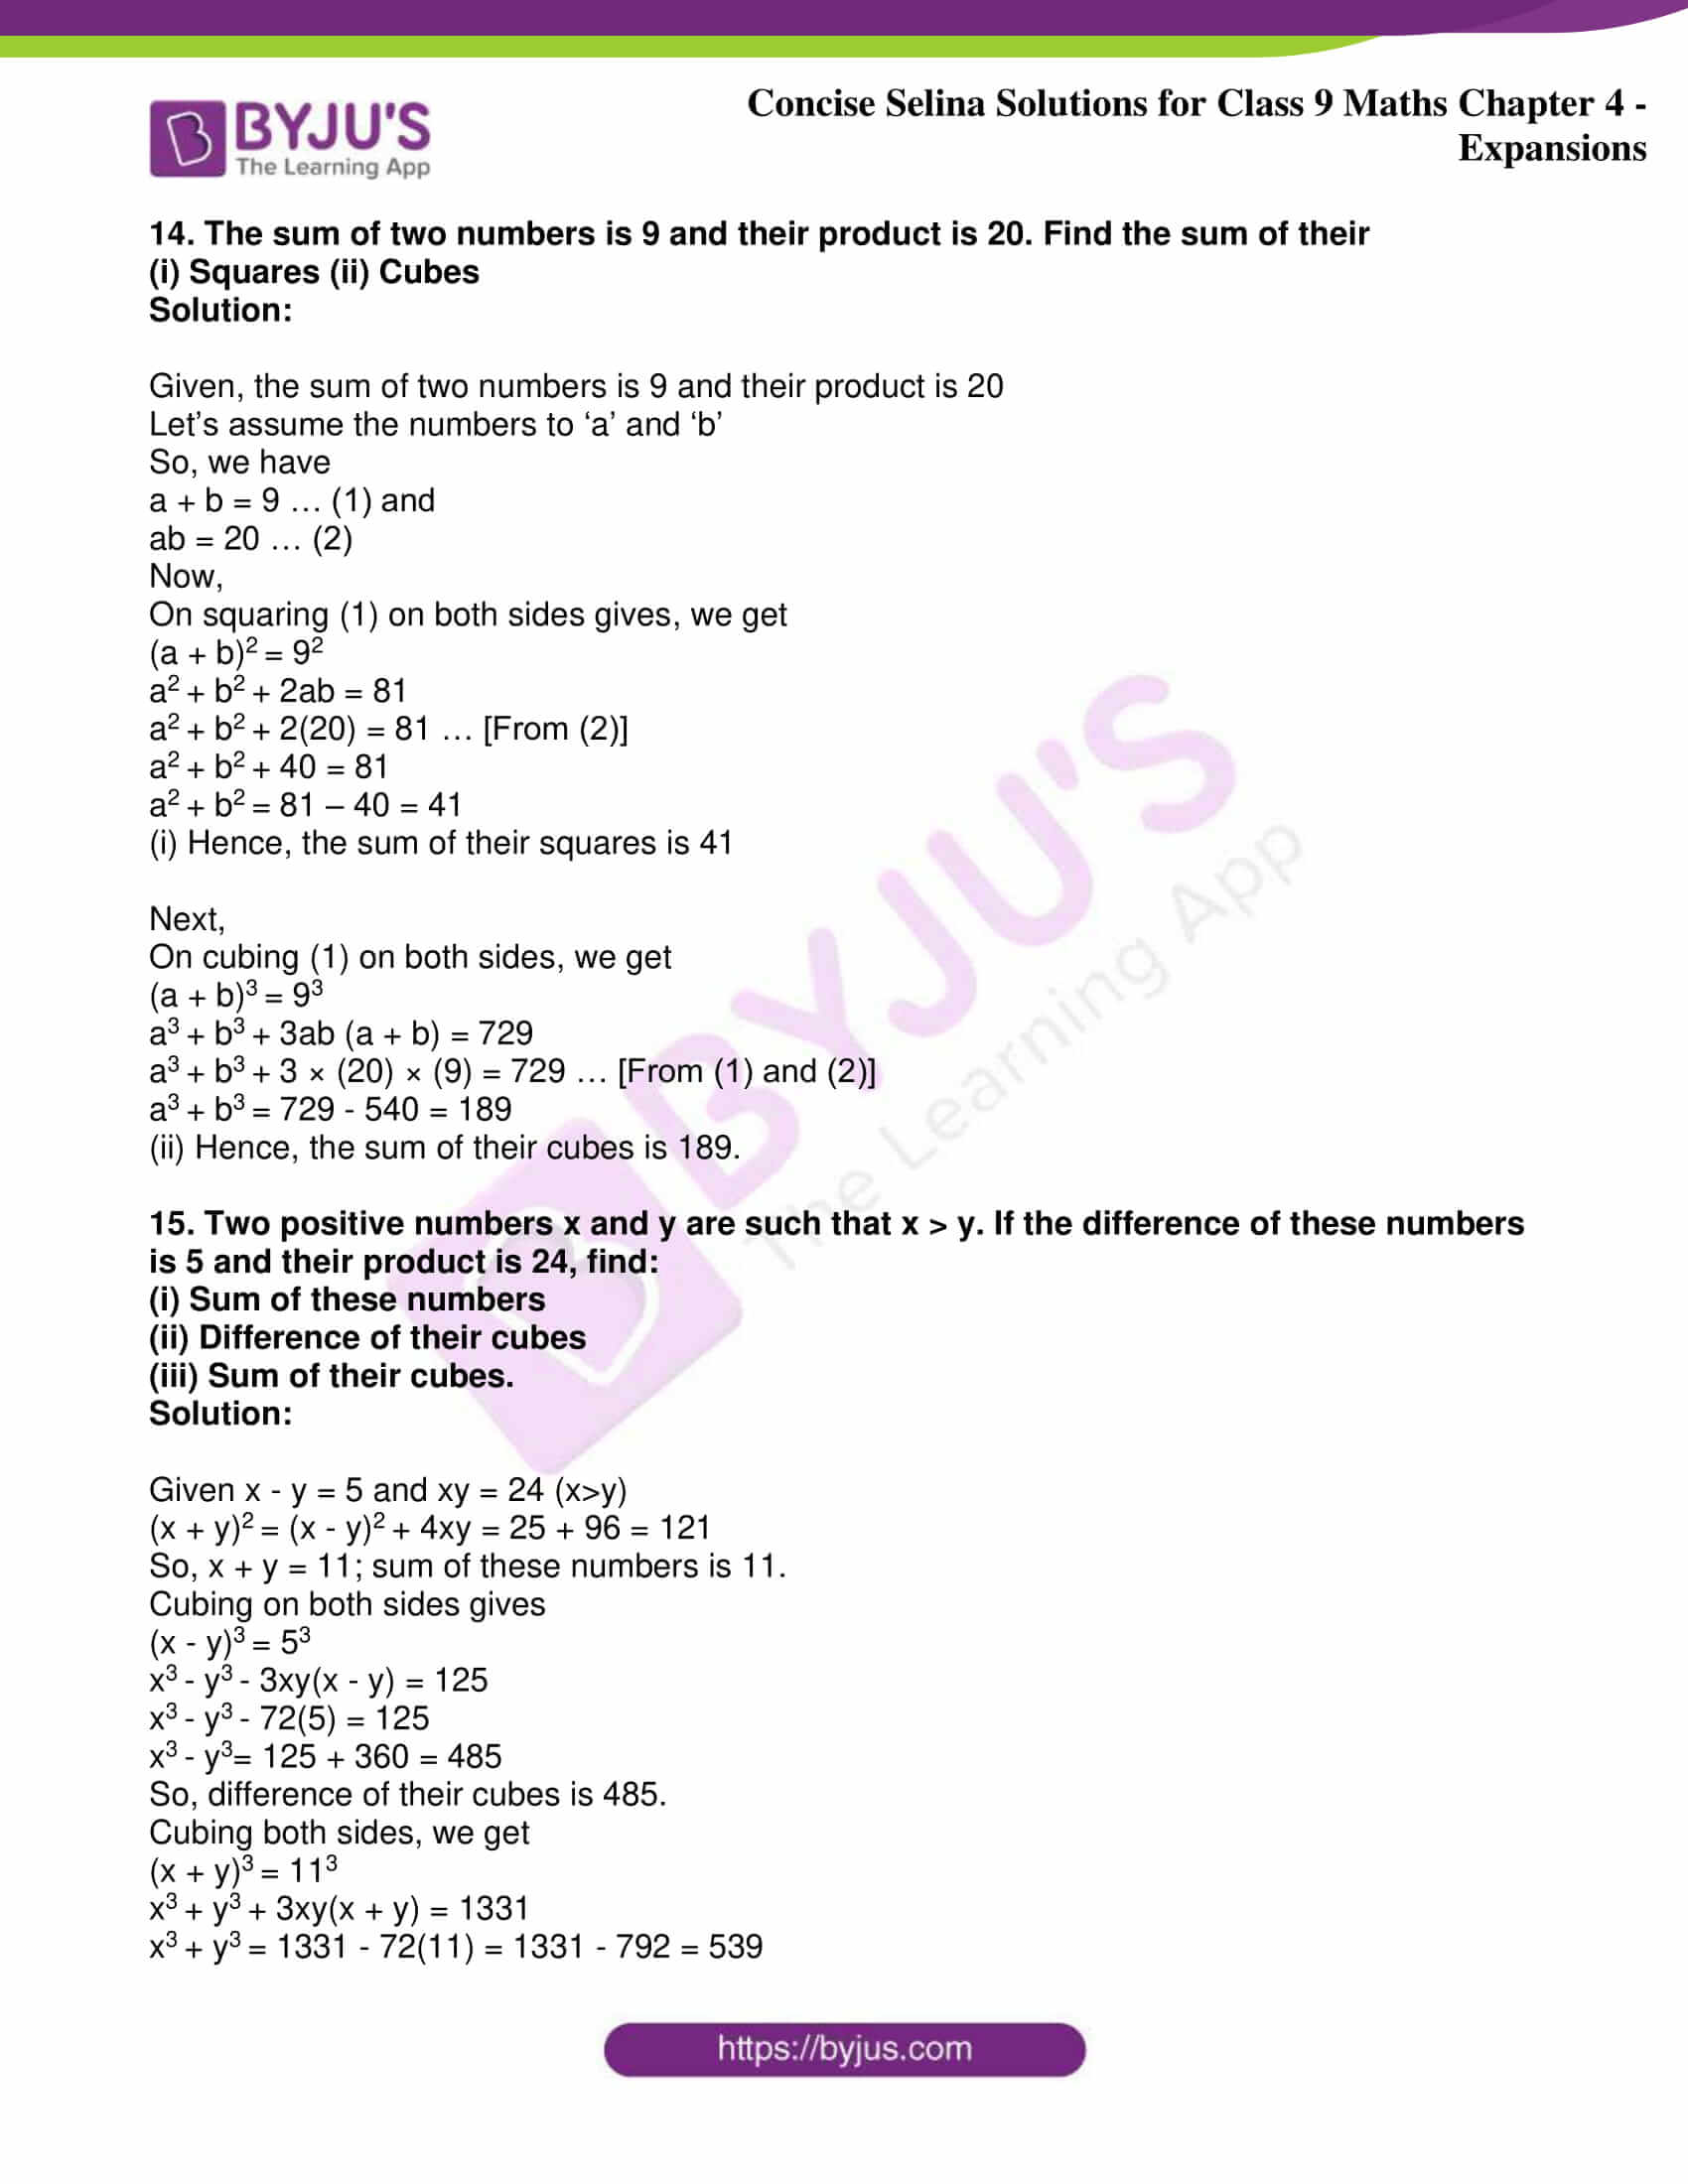 icse class 9 maths may10 selina solutions chapter 4 expansions 16